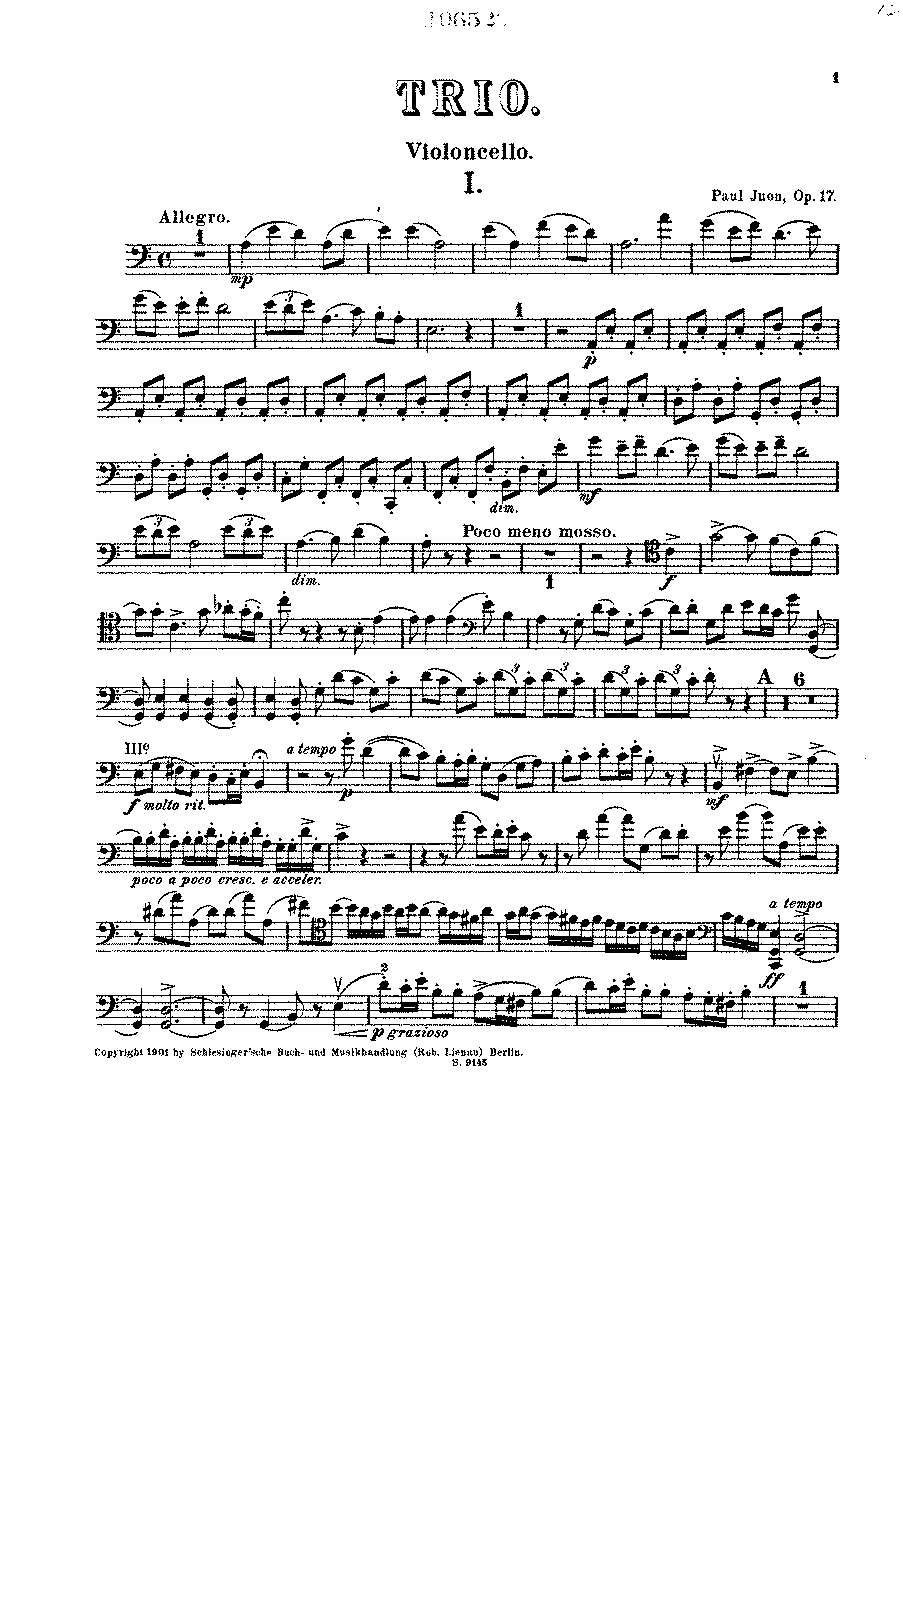 Juon Piano Trio Op.17 parts.pdf